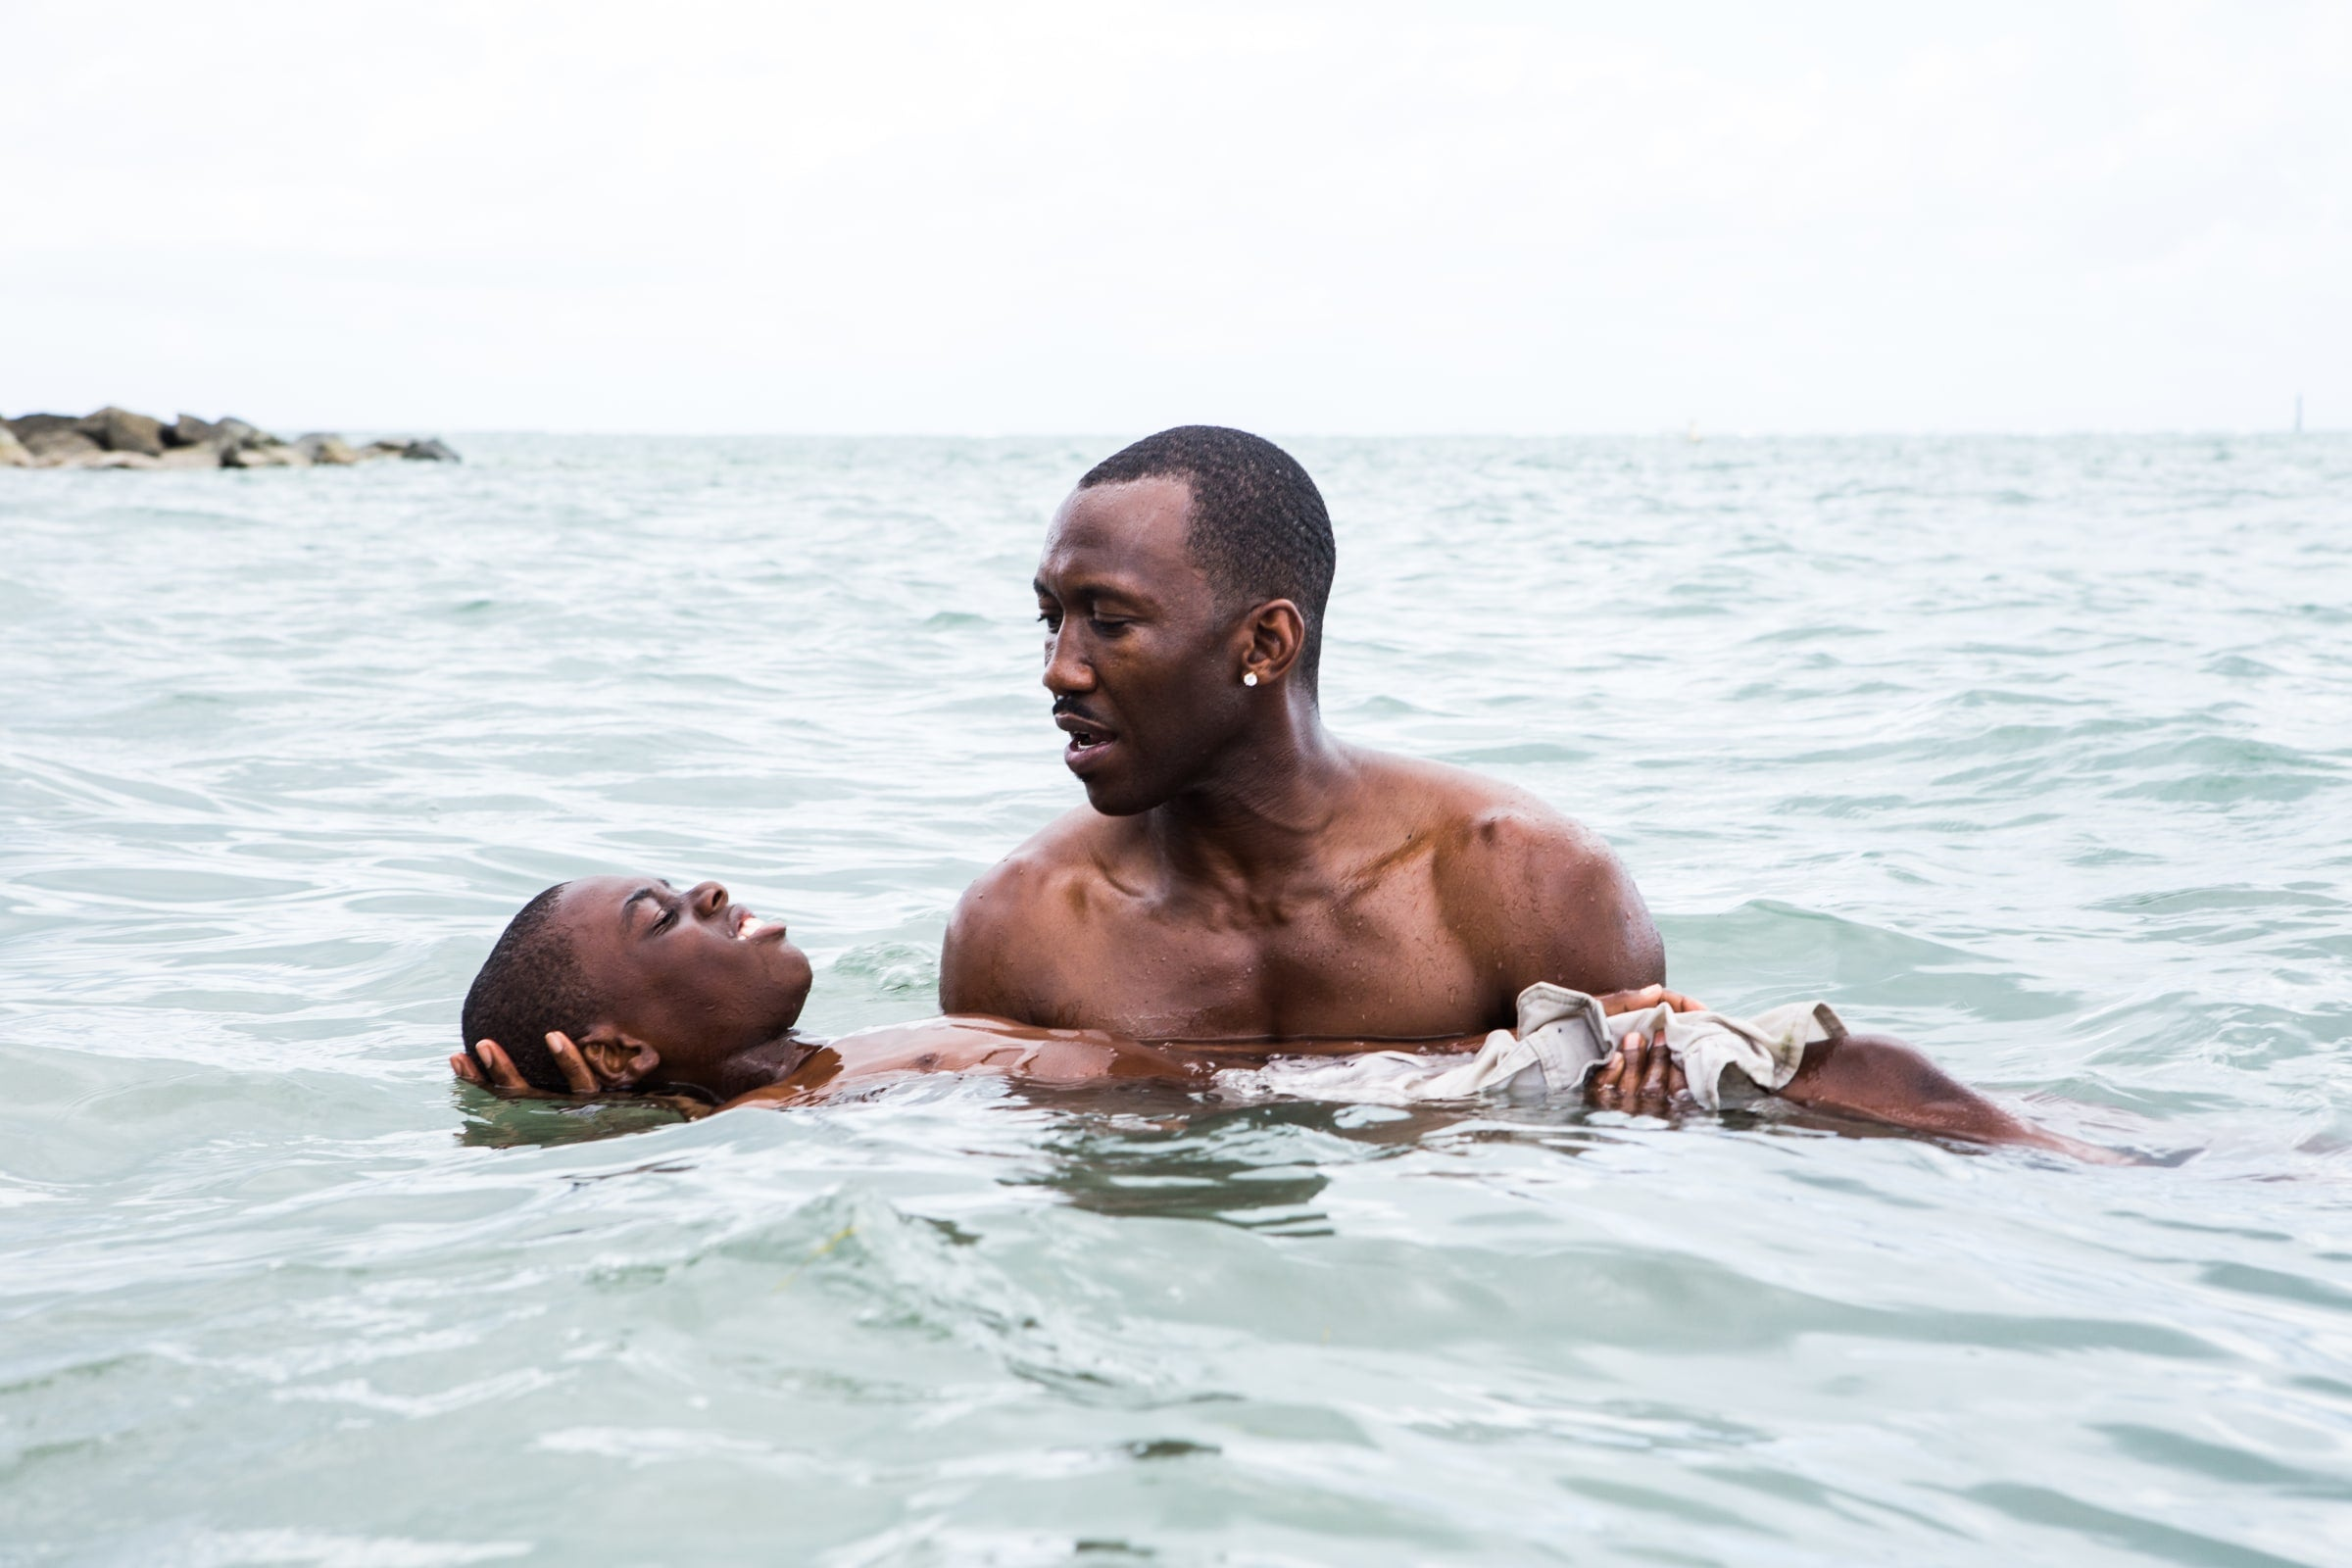 A Necessary Story:How 'Moonlight' Allows Black Manhood To Exist Beyond Toxic Masculinity